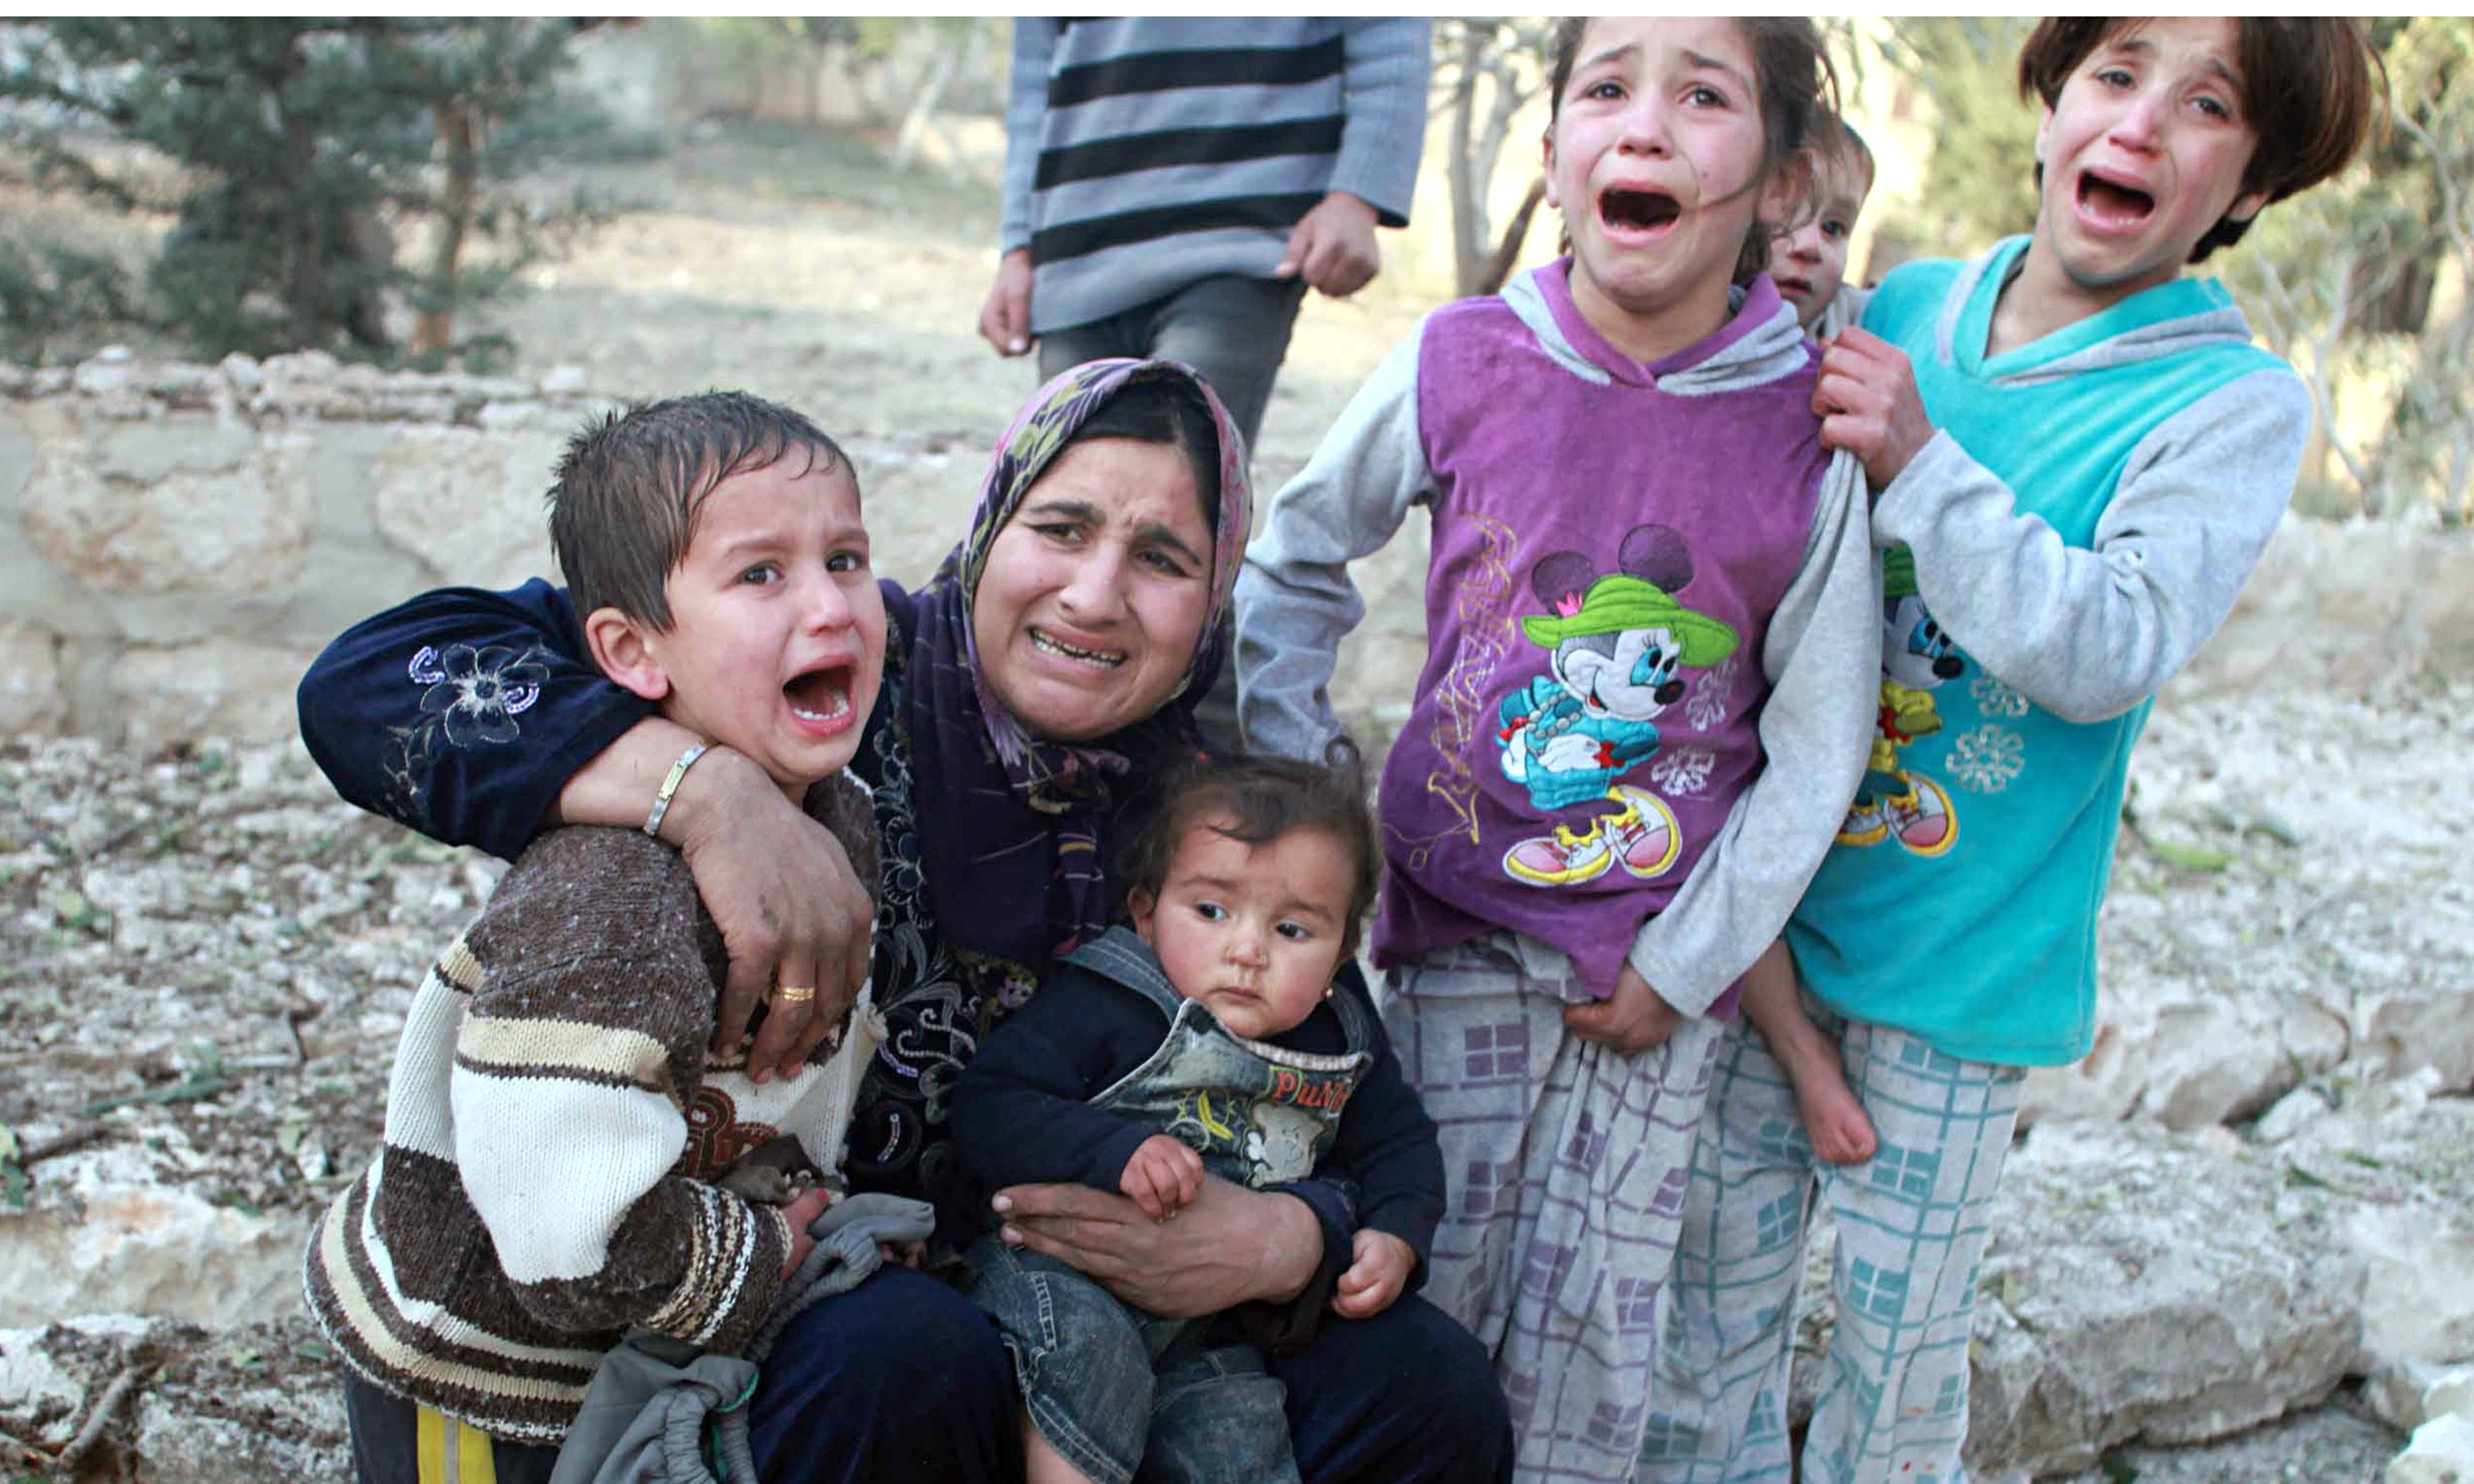 Syria children maimed and tortured by Assad forces, says ...